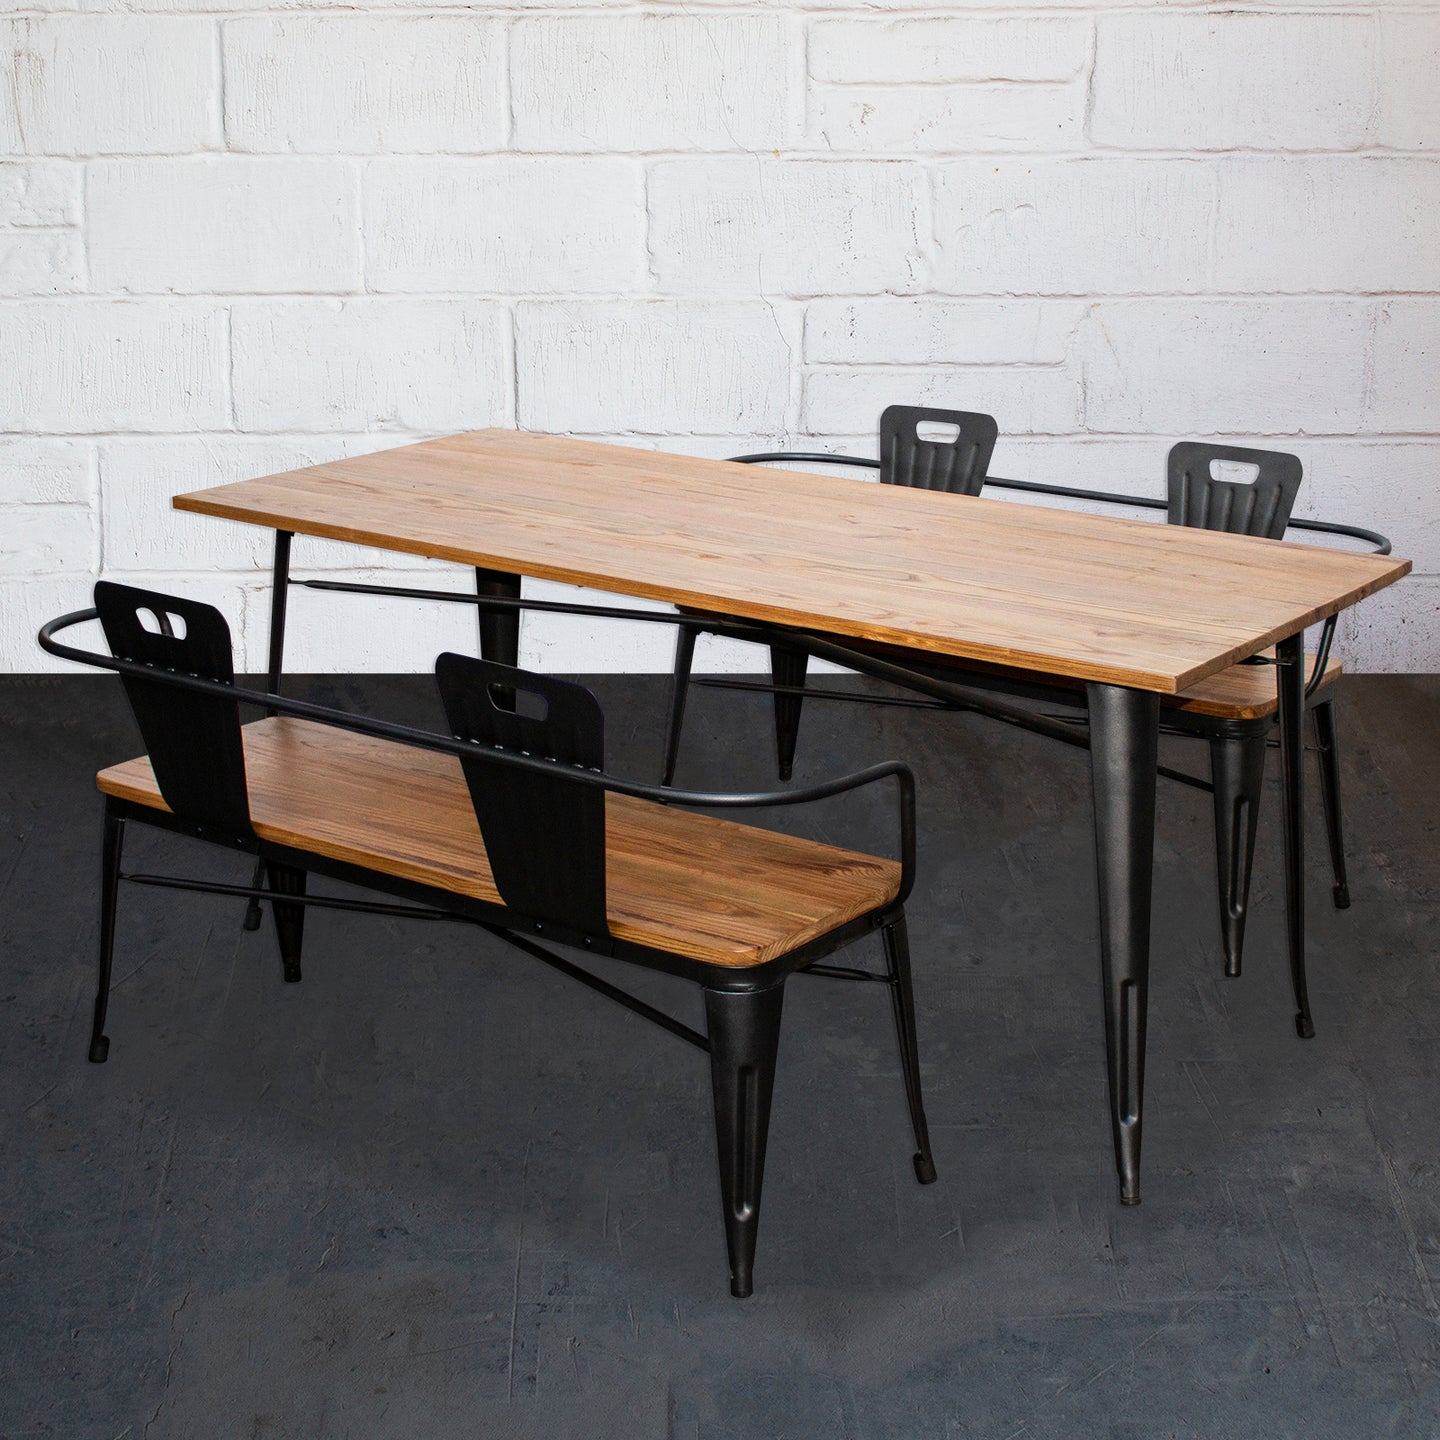 3PC Taranto Table & 2 Nuoro Benches Set - Onyx Matt Black